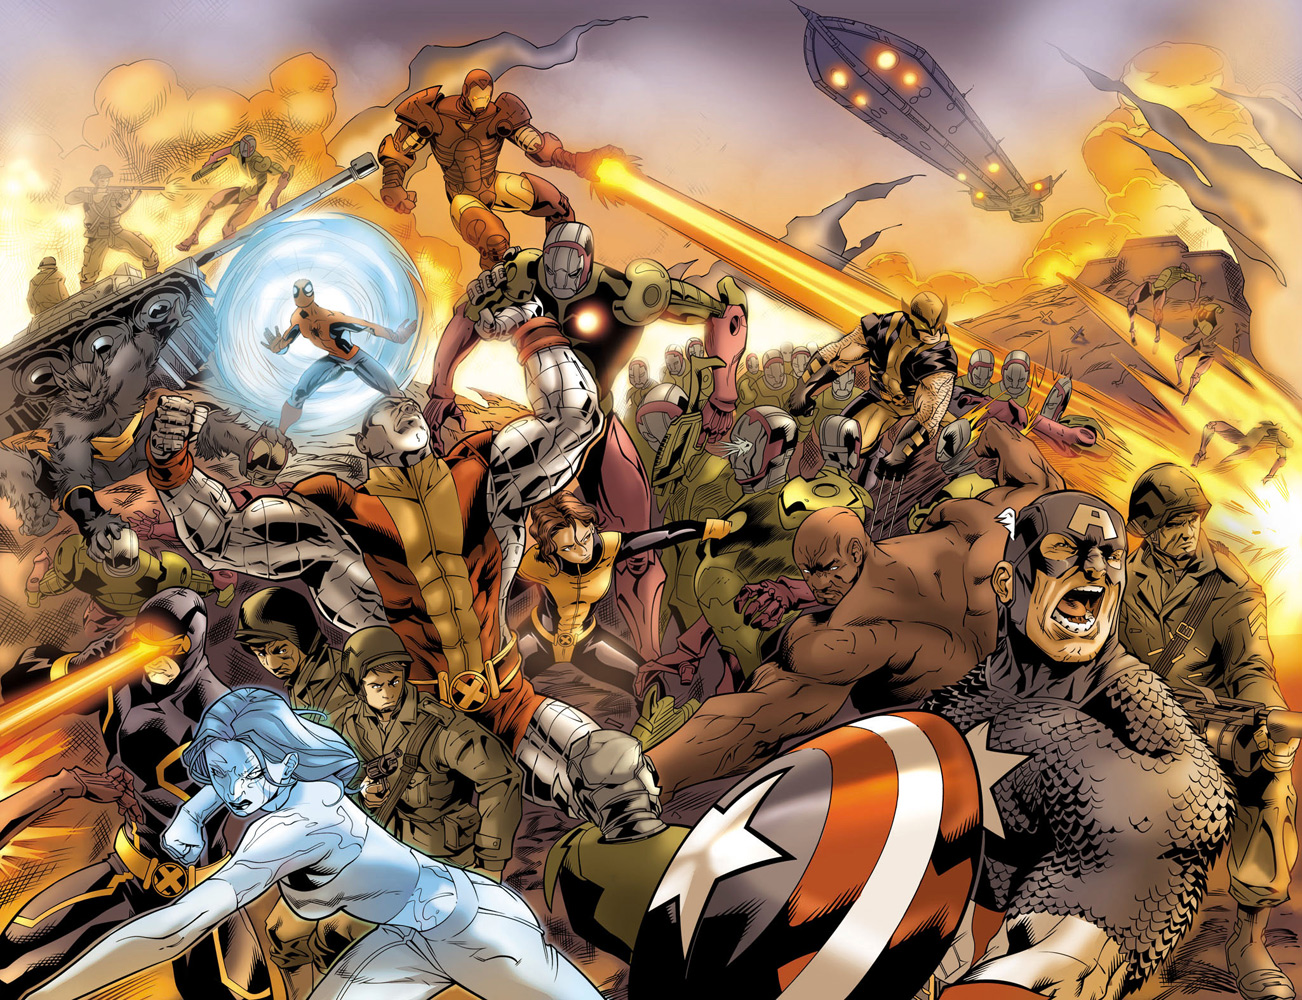 http://fc33.deviantart.com/fs14/f/2007/014/0/1/X_Men_Avengers_2_Page_Spread_by_UdonCrew.jpg